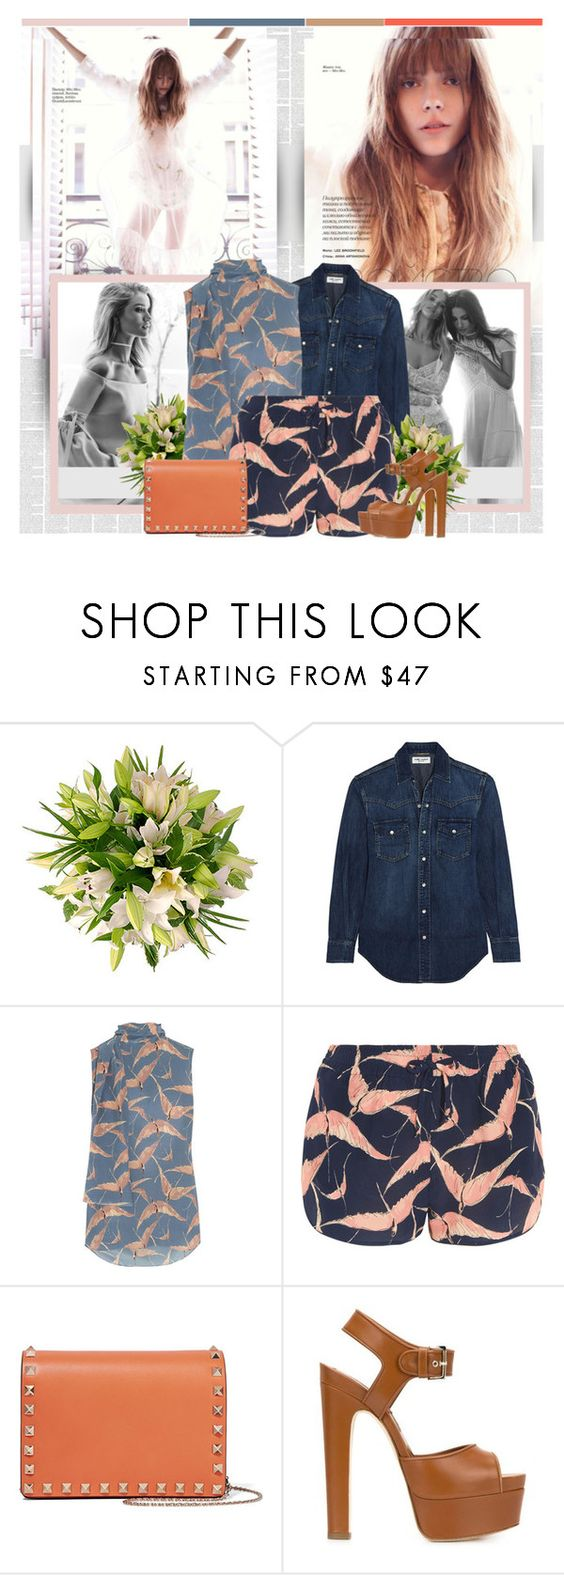 """Saturday"" by bklana ❤ liked on Polyvore featuring Whiteley, Yves Saint Laurent, Valentino and Brian Atwood"